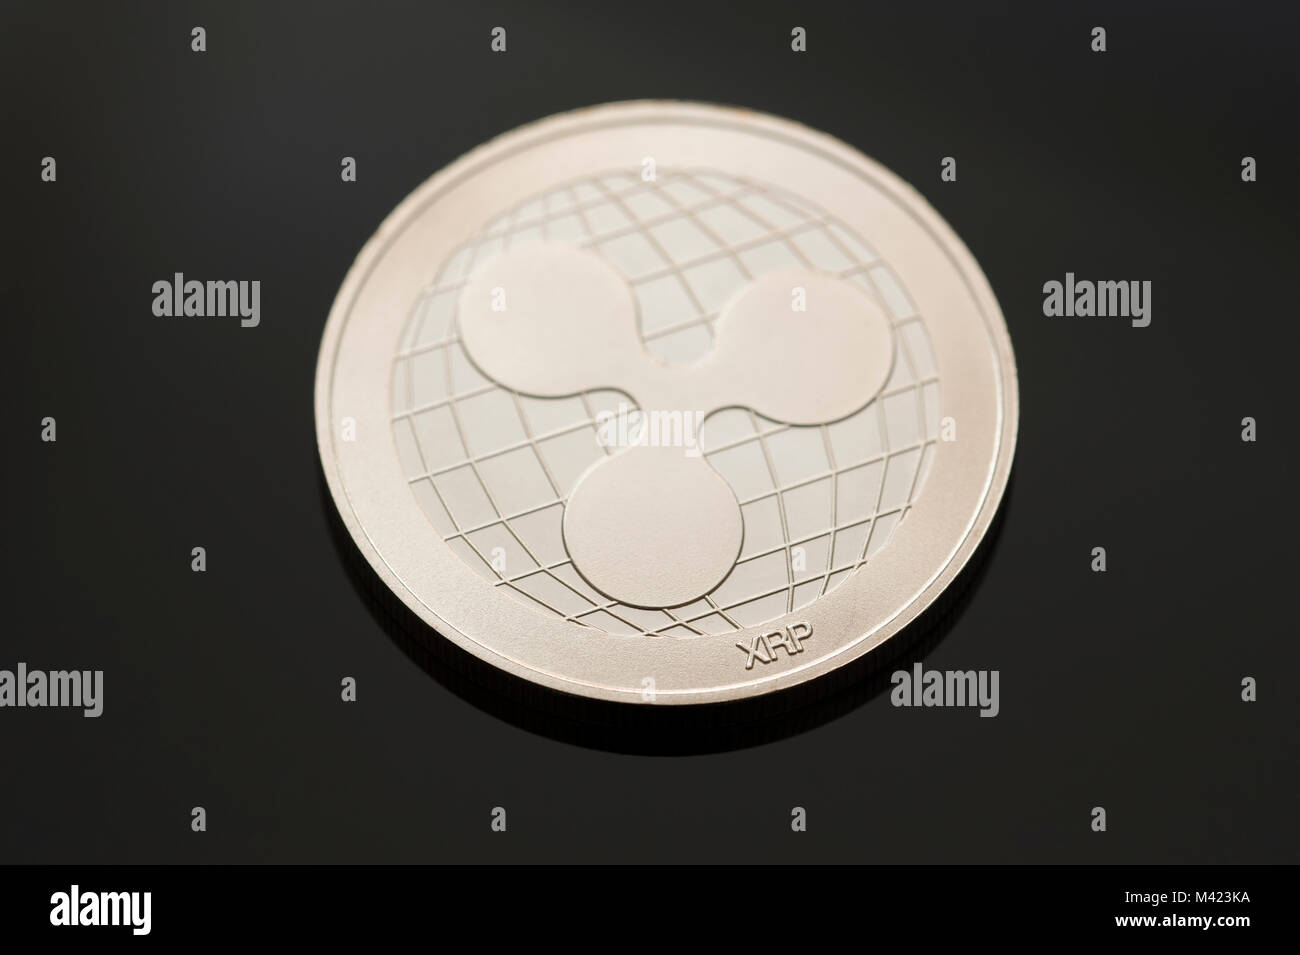 A single Ripple (XRP) token or coin on a black background. One of many digital or cryptocurrencies that use blockchain - Stock Image